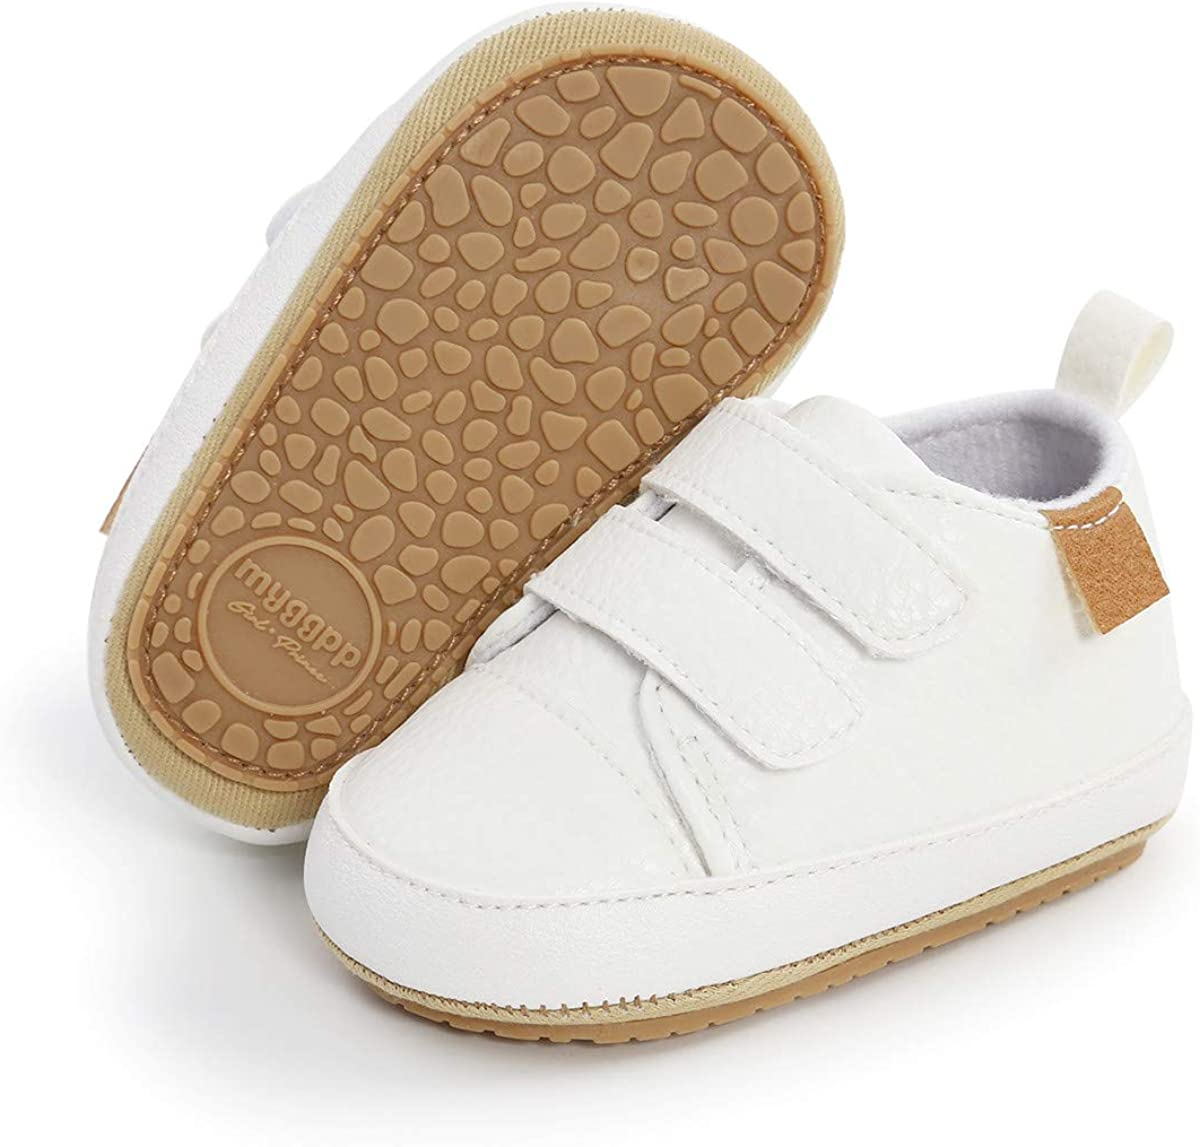 COSANKIM Baby Boys Girls Shoes Lace Up Leather Infant Sneakers Non Slip Rubber Sole Newborn Loafers Toddler First Walker Crib Shoes